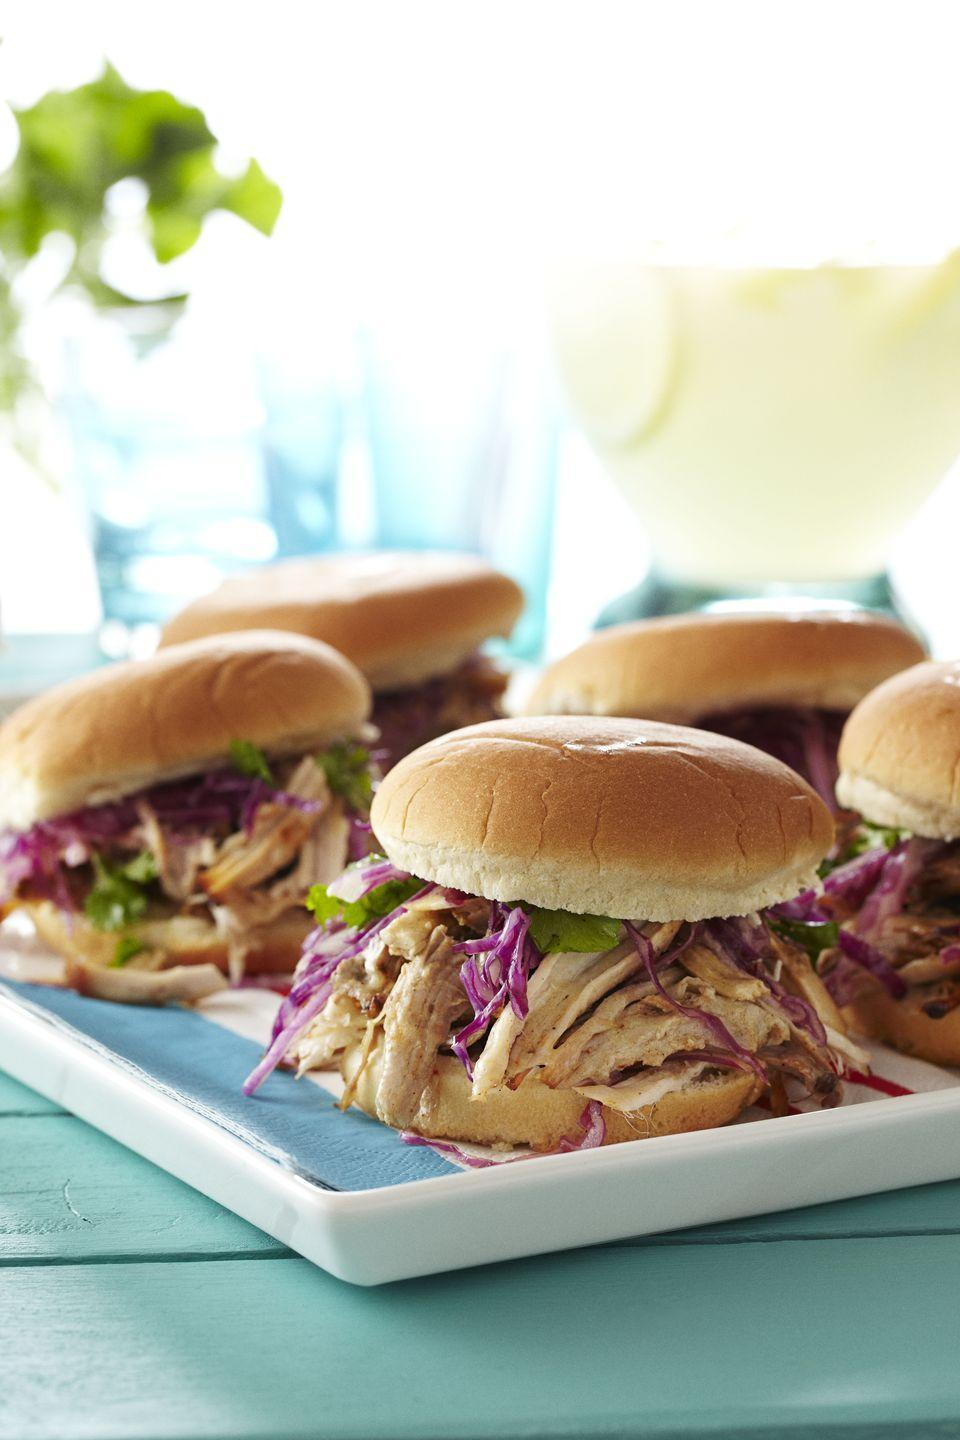 "<p>A few dashes of paprika, coriander, cayenne and chili powder add some heat to sweet pulled pork. Top each sandwich with some cool coleslaw for extra crunch.</p><p><a href=""https://www.goodhousekeeping.com/food-recipes/a13789/pulled-pork-black-pepper-vinegar-recipe-ghk0712/"" rel=""nofollow noopener"" target=""_blank"" data-ylk=""slk:Get the recipe for Pulled Pork with Black Pepper Vinegar »"" class=""link rapid-noclick-resp""><em>Get the recipe for Pulled Pork with Black Pepper Vinegar »</em></a></p>"